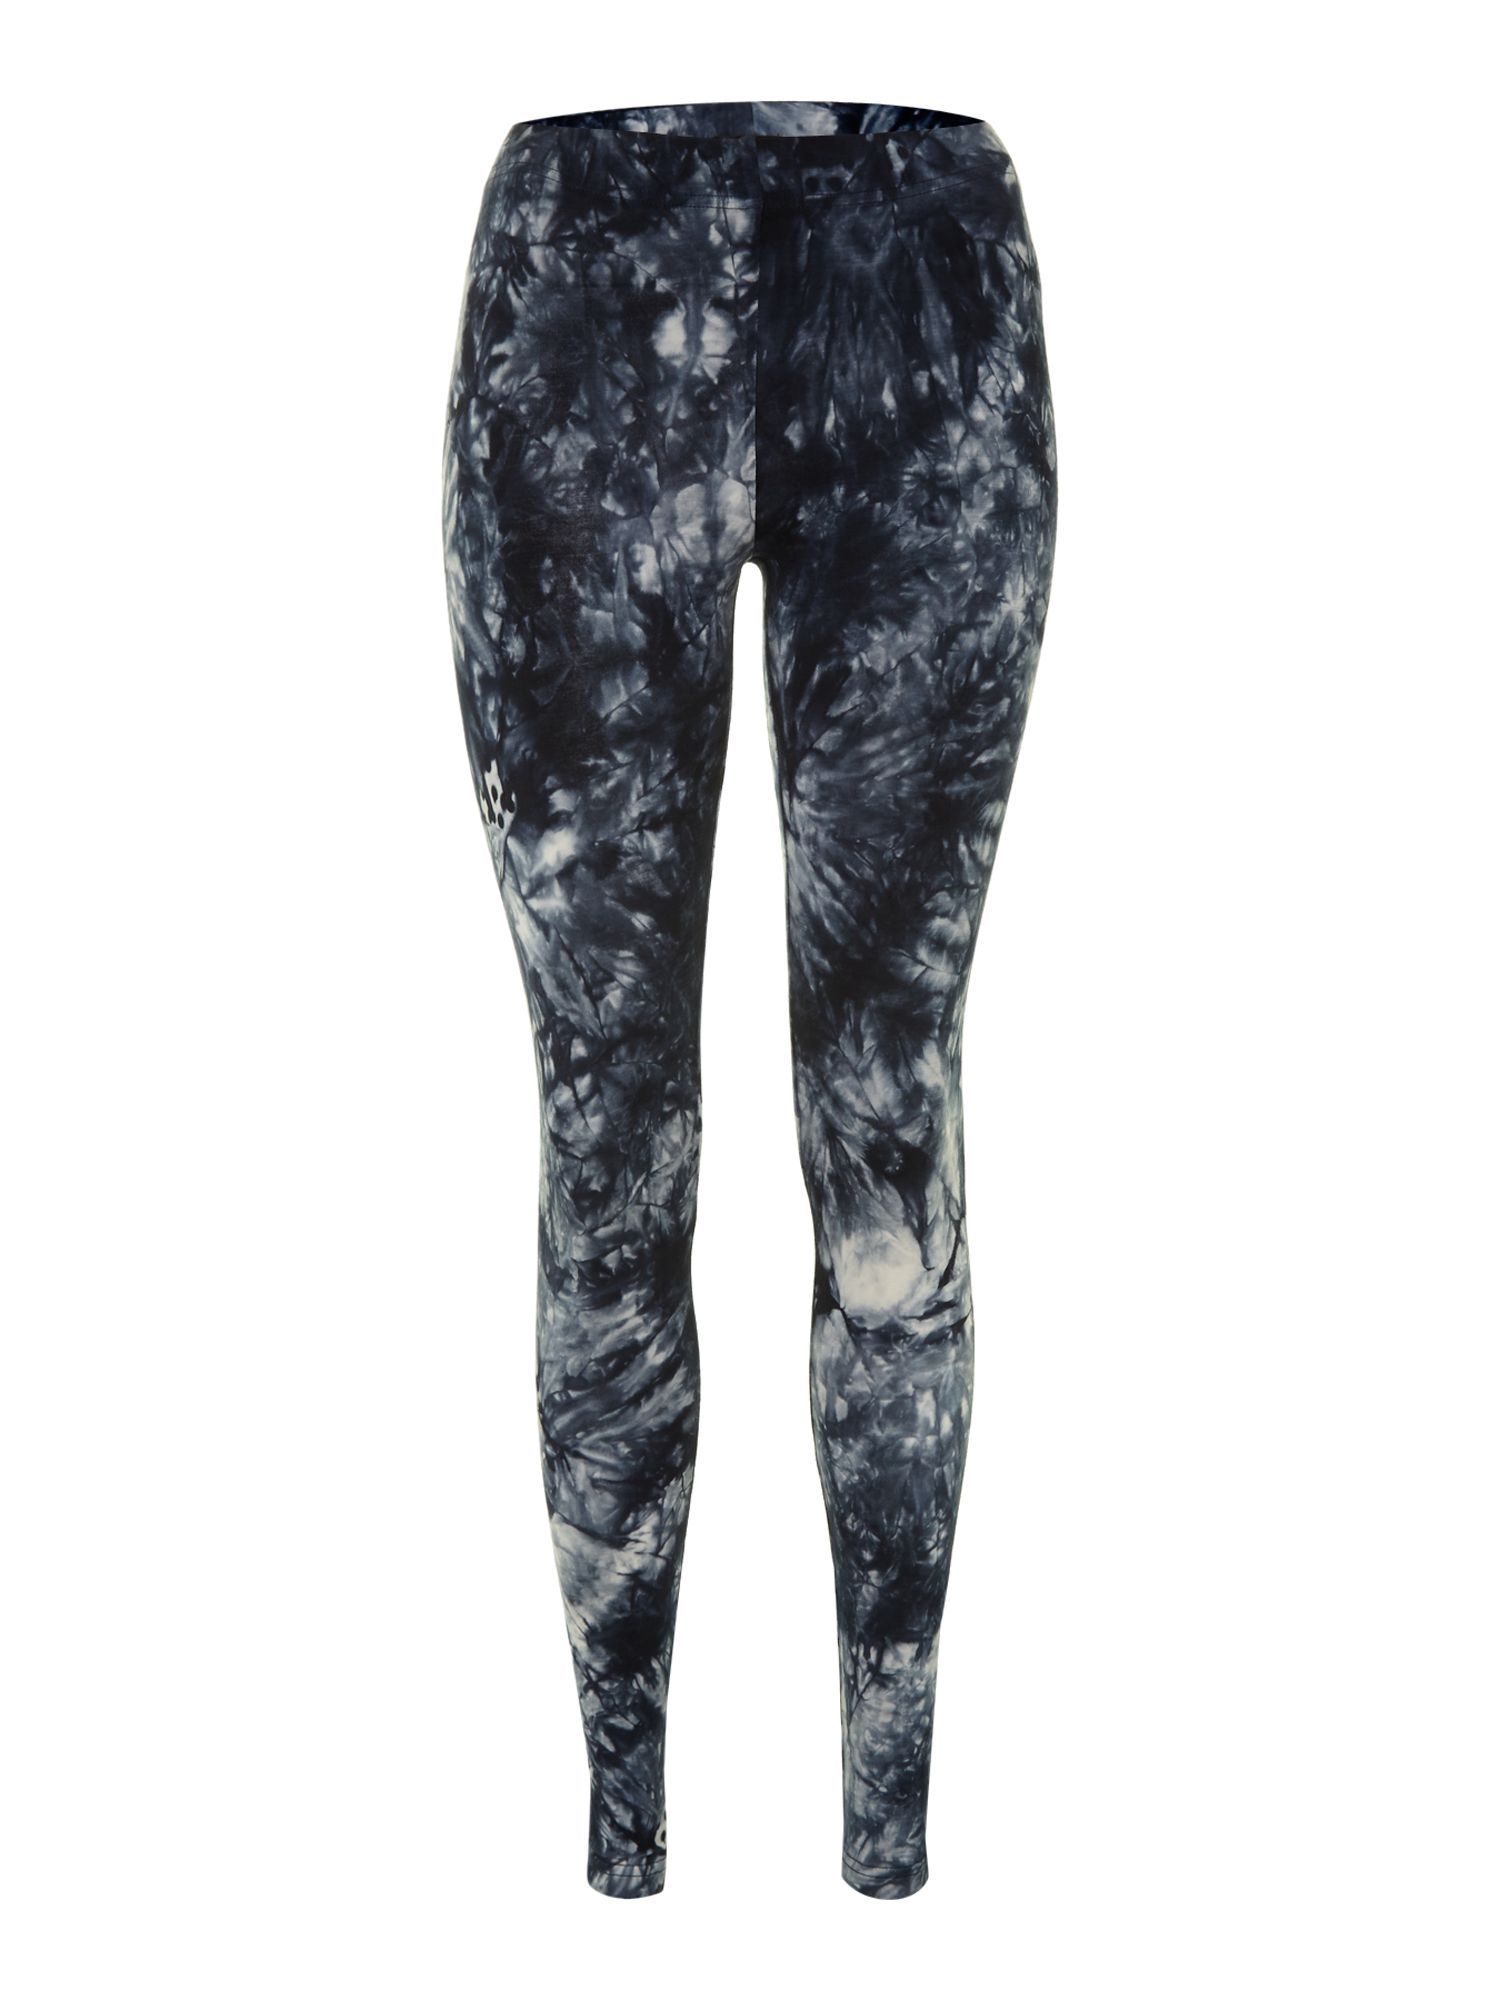 Cloudy print leggings